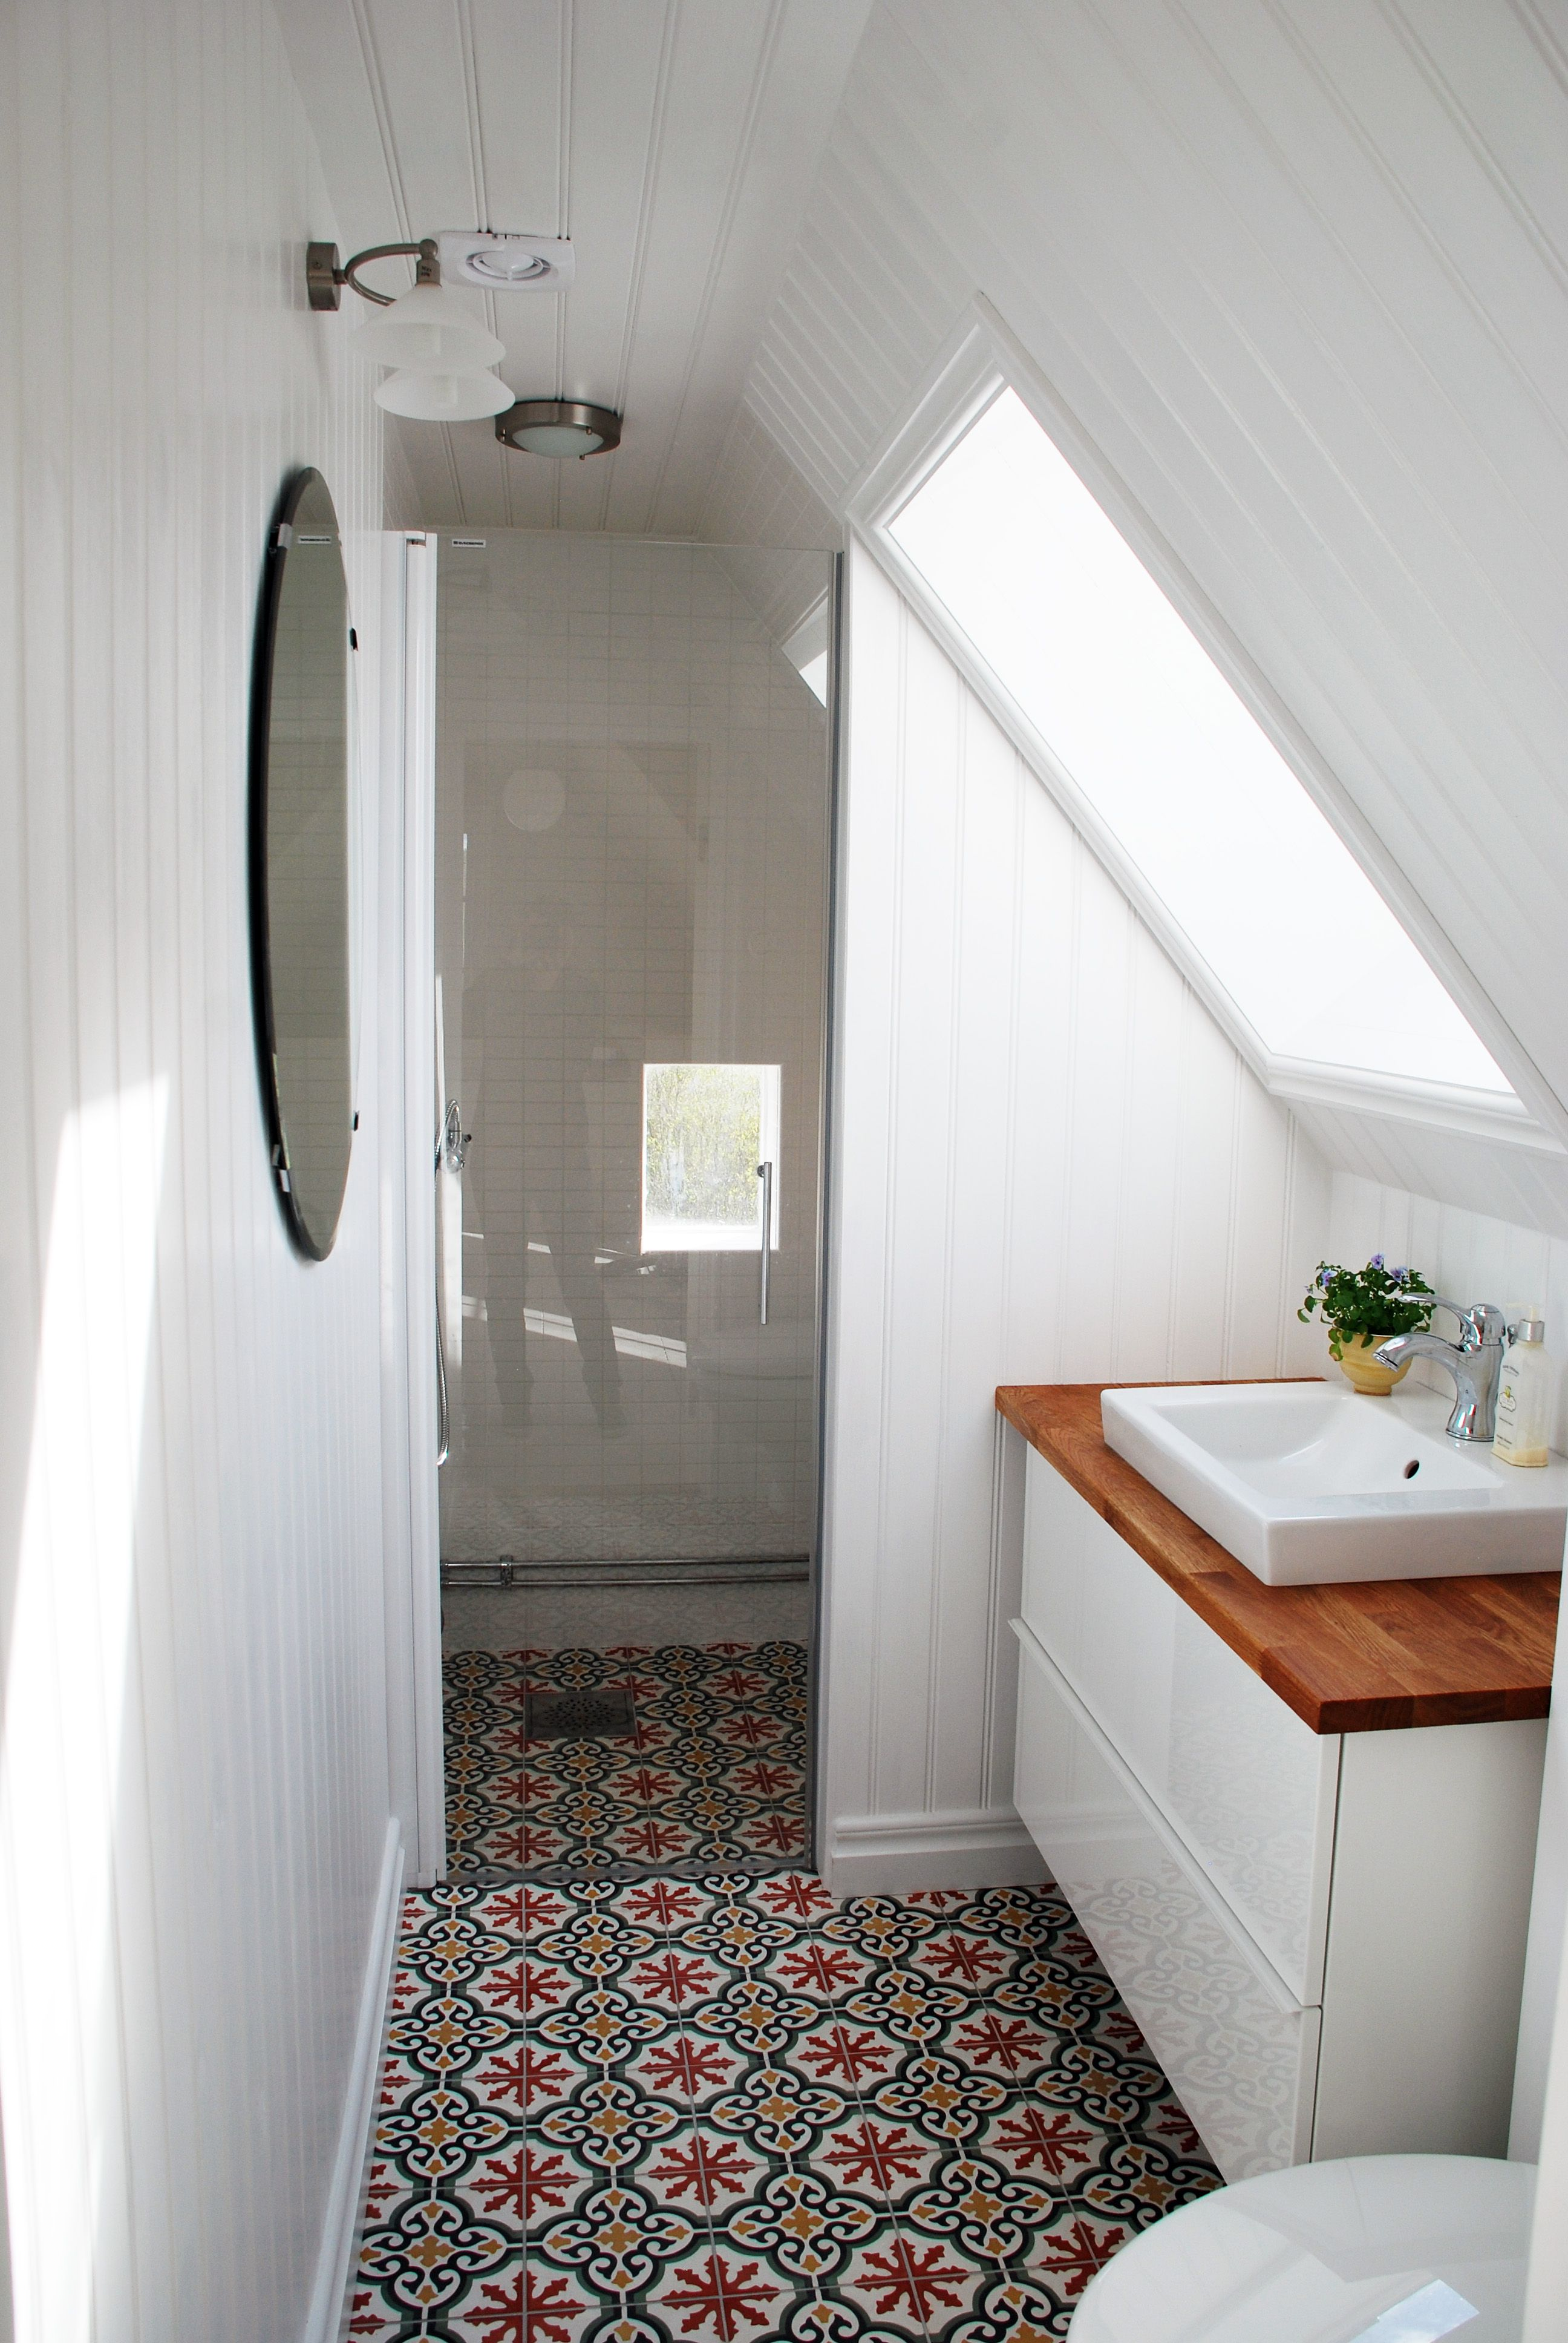 Badrumsrenoveringen är KLAR | Attic | Pinterest | Kids bath, Bath ...